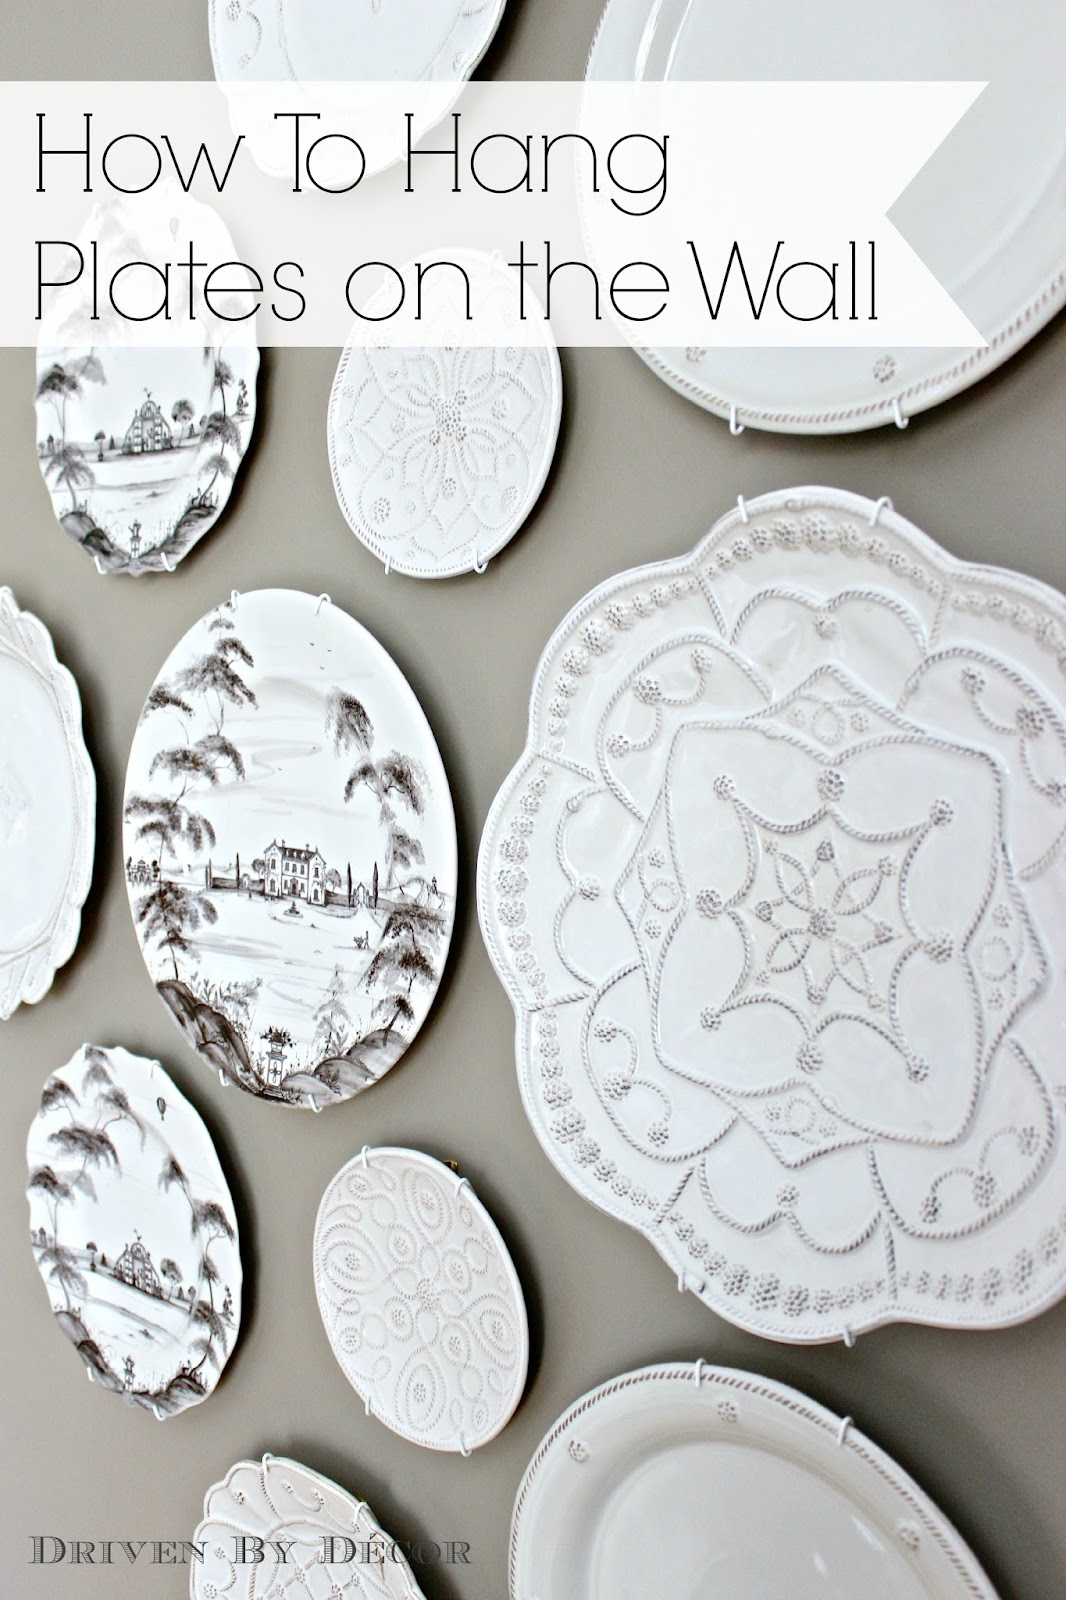 How To Hang Plates on the Wall (The Best Hangers & More ...